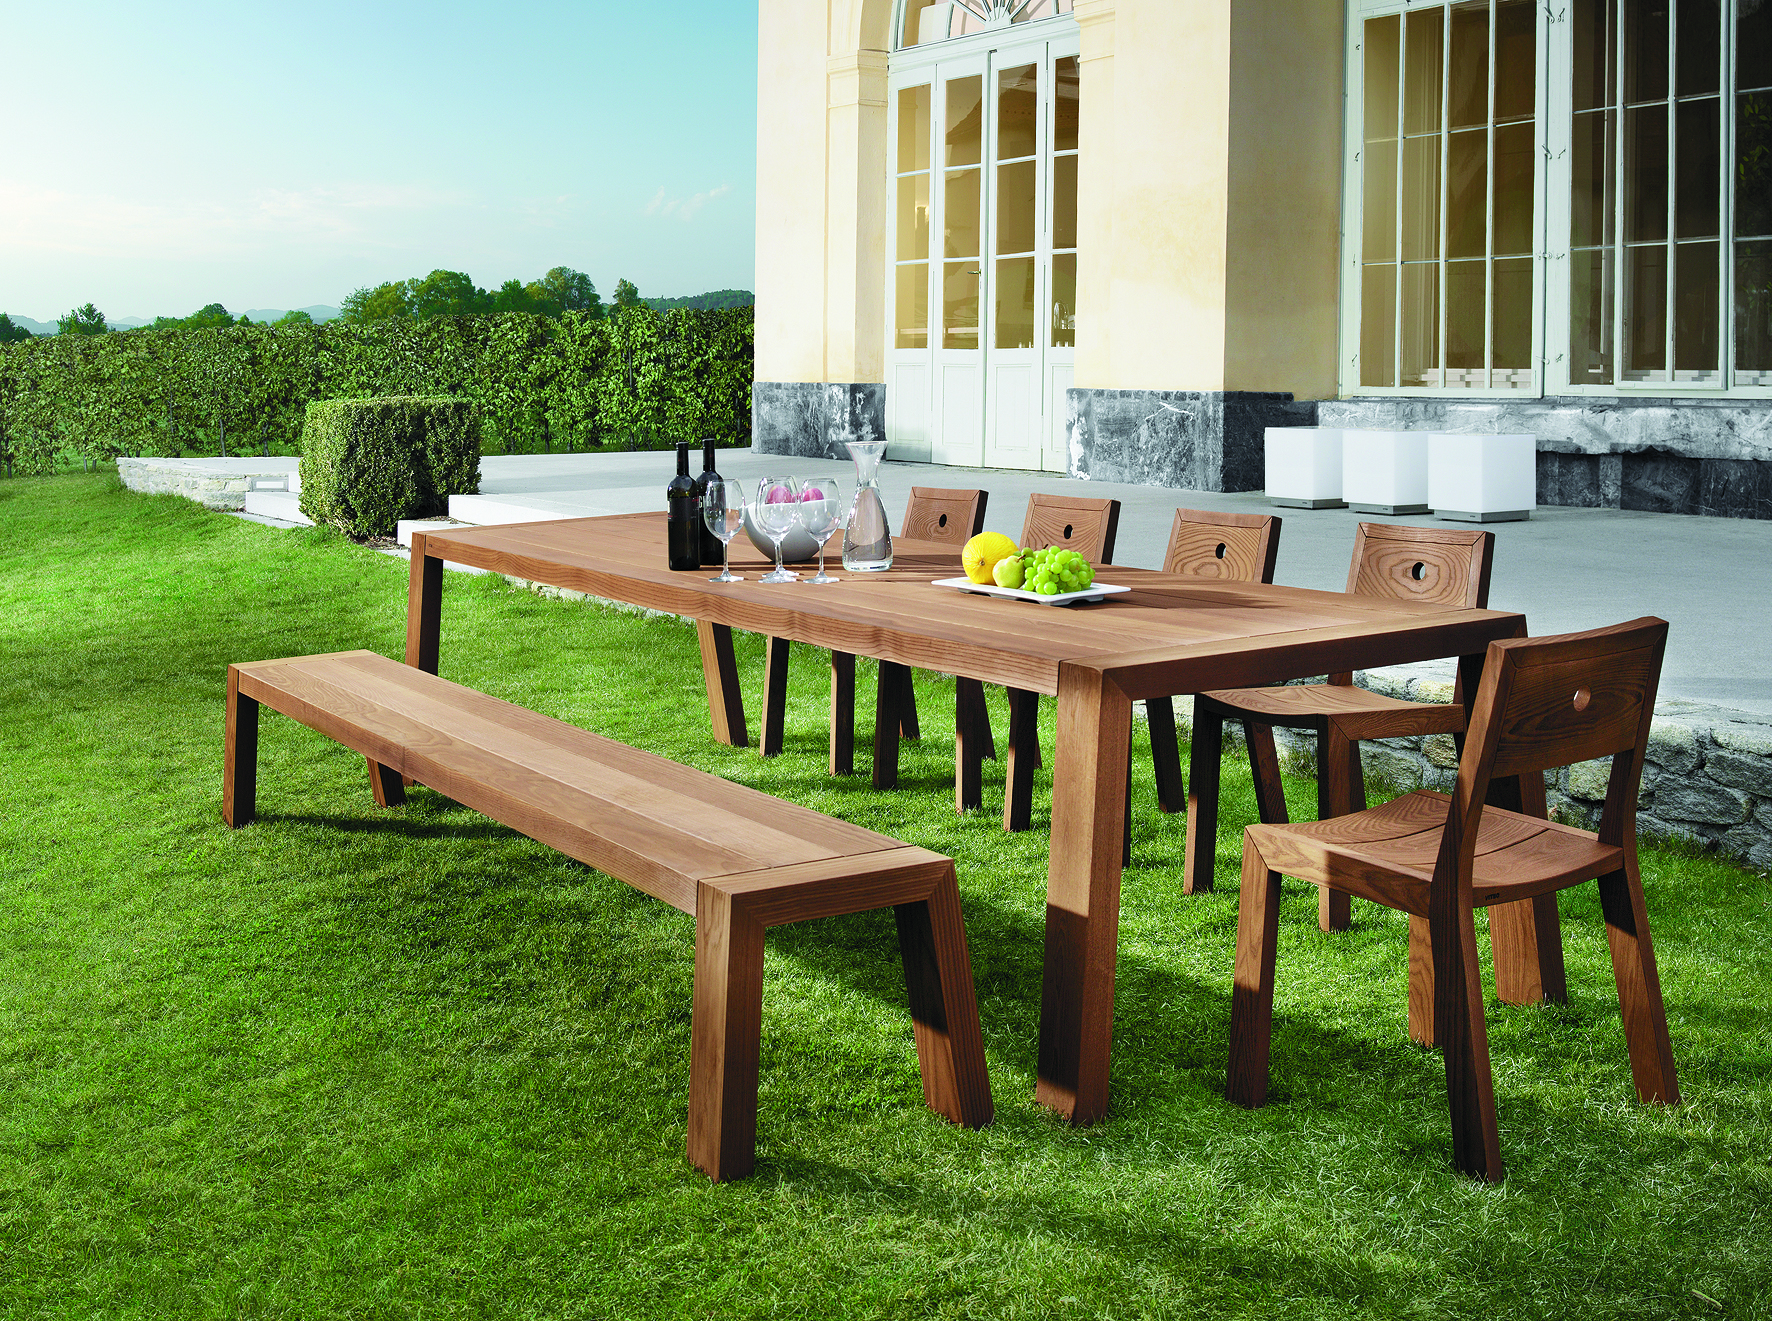 Encompass Furniture New Products Spring 2010 Modern Garden Poolside Furniture